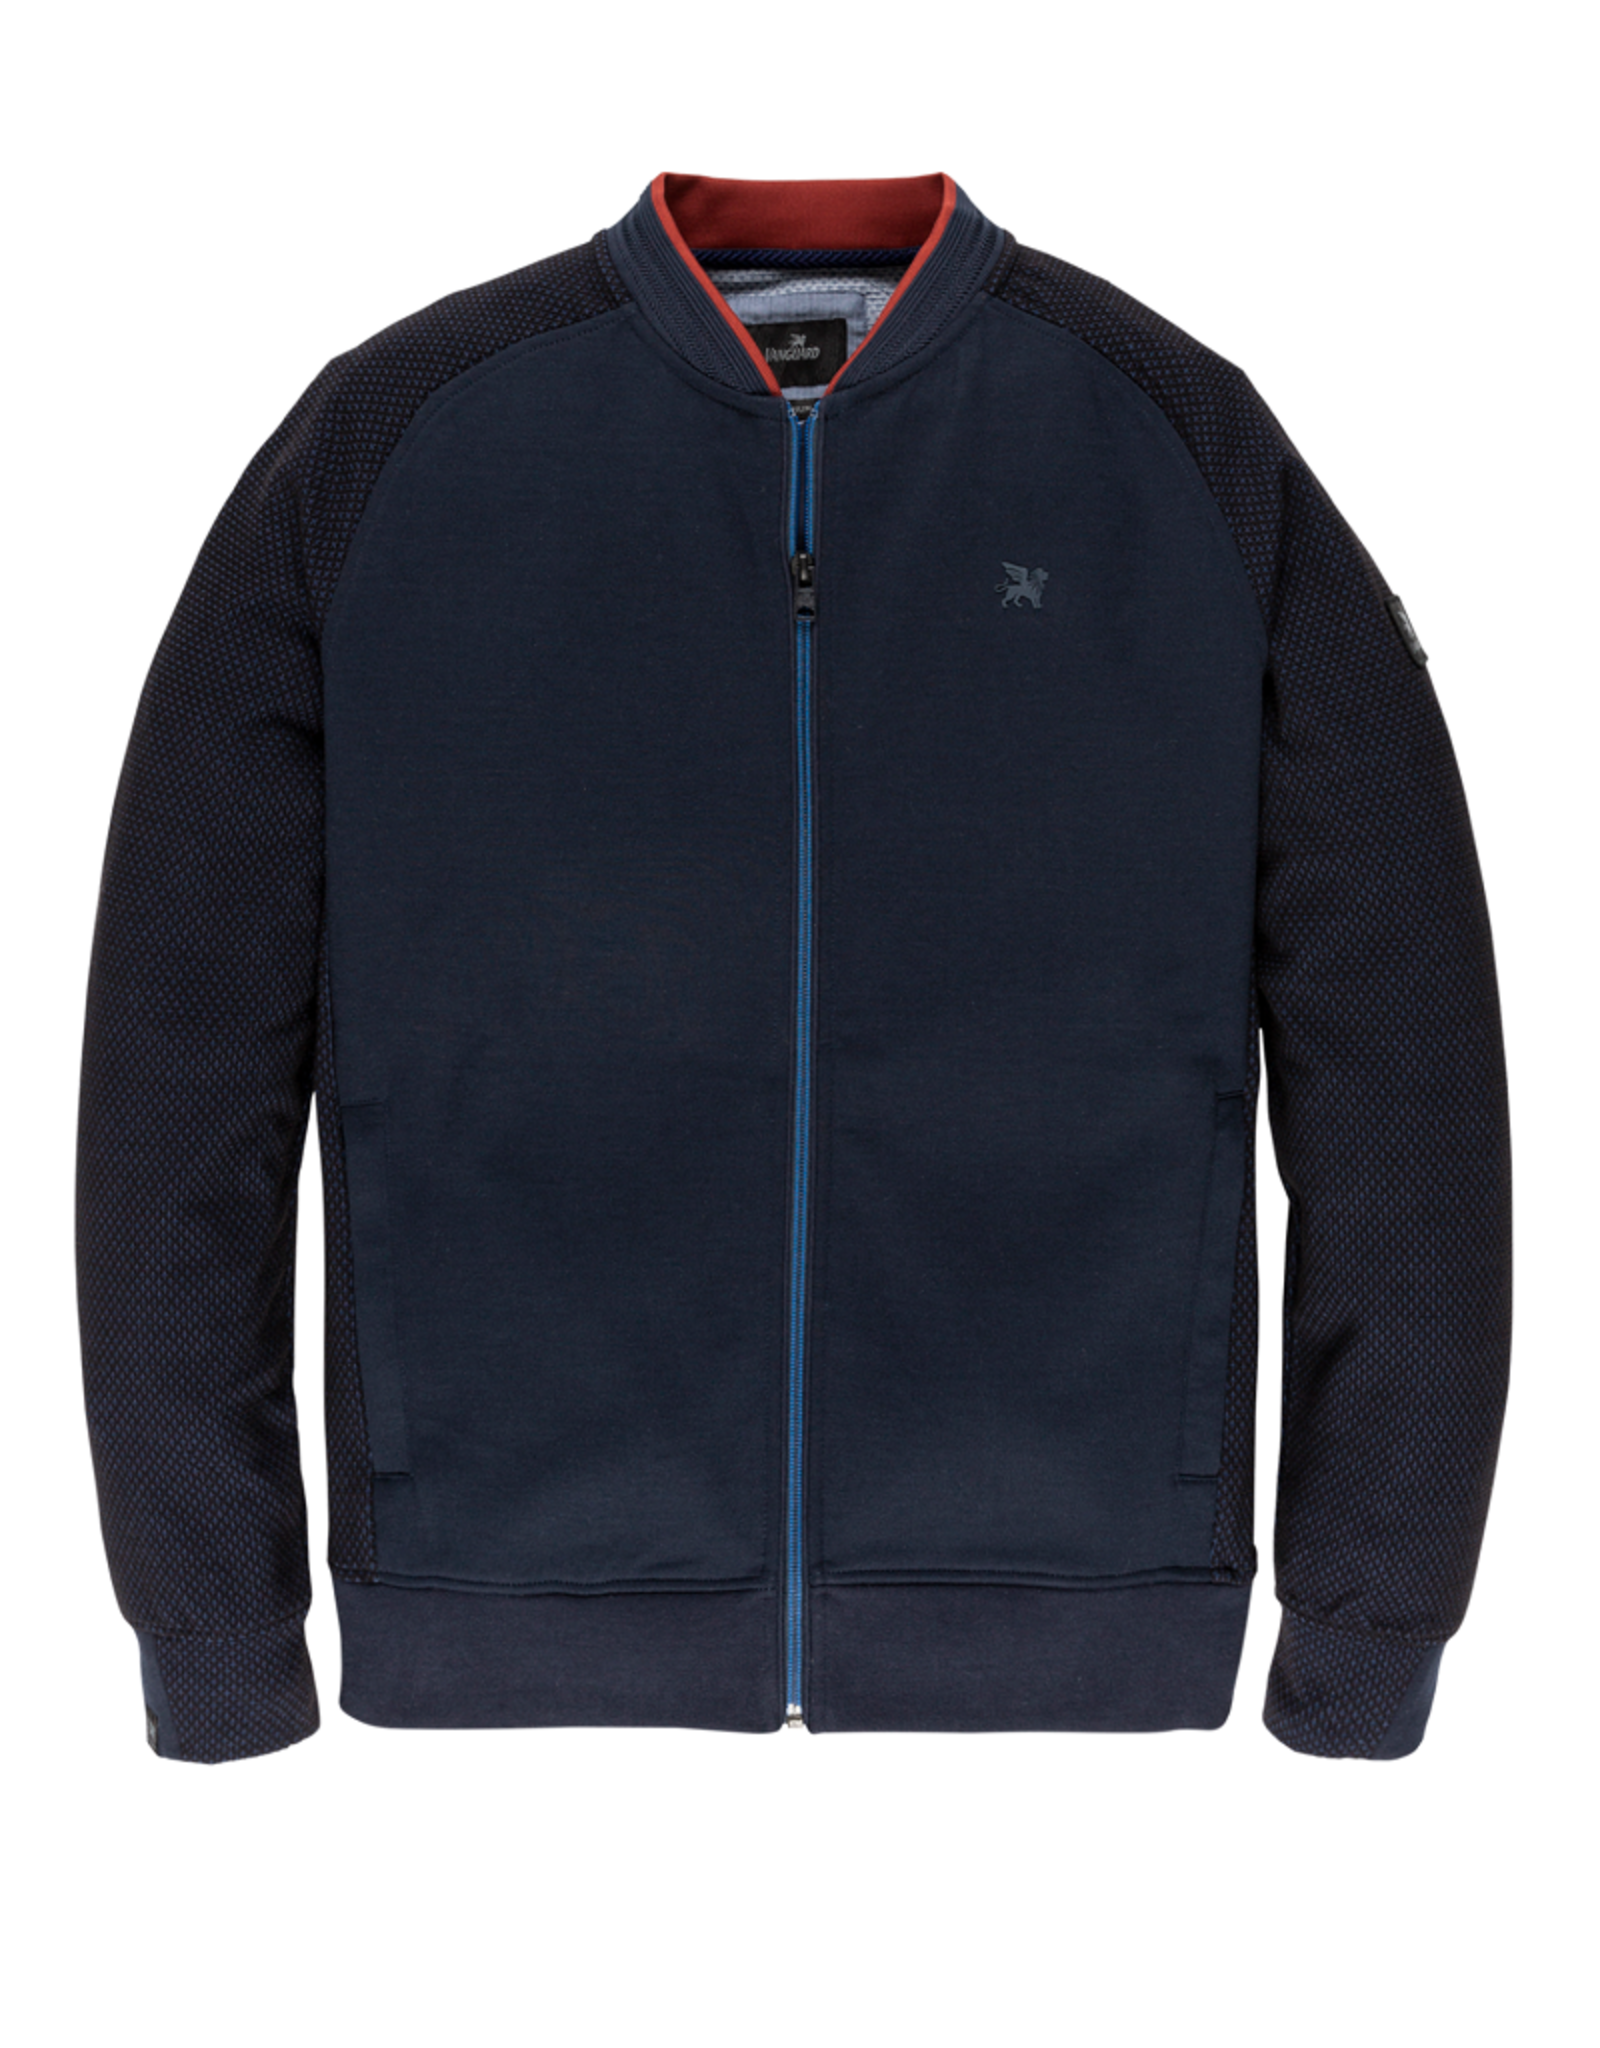 Vanguard Vanguard Zip jacket ultimate mix sweater